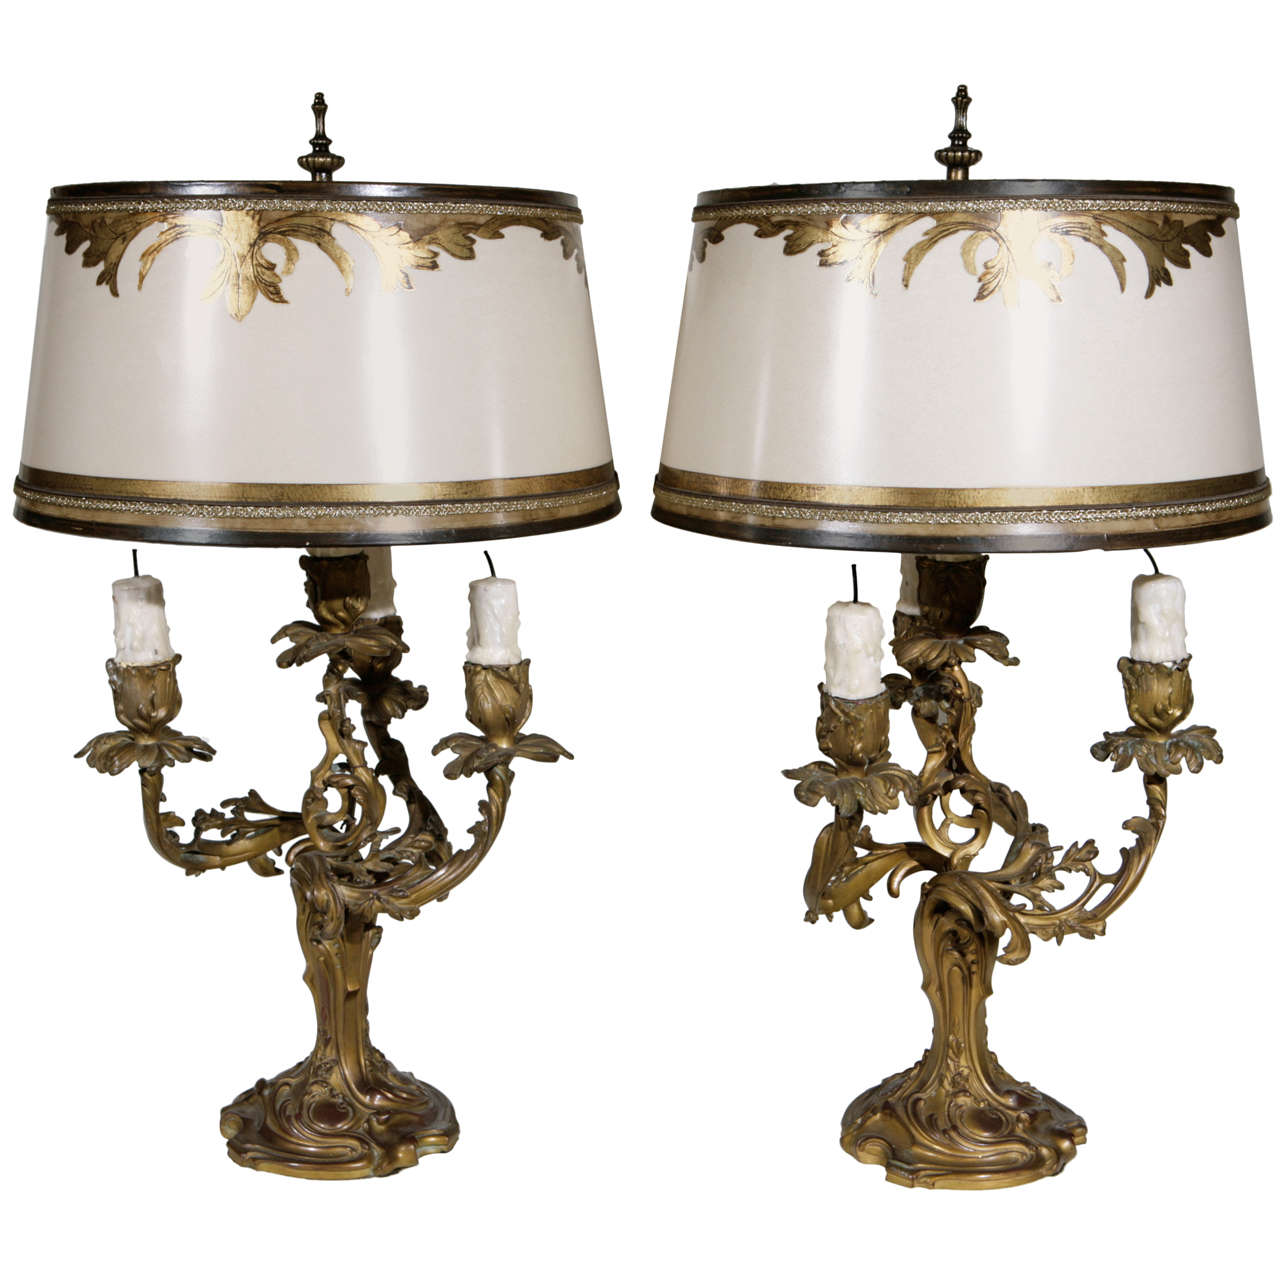 Pair Of 19th C French 3 Arm Dore Bronze Candelabra Lamps Bronze Candelabras Bronze Candle Lamp